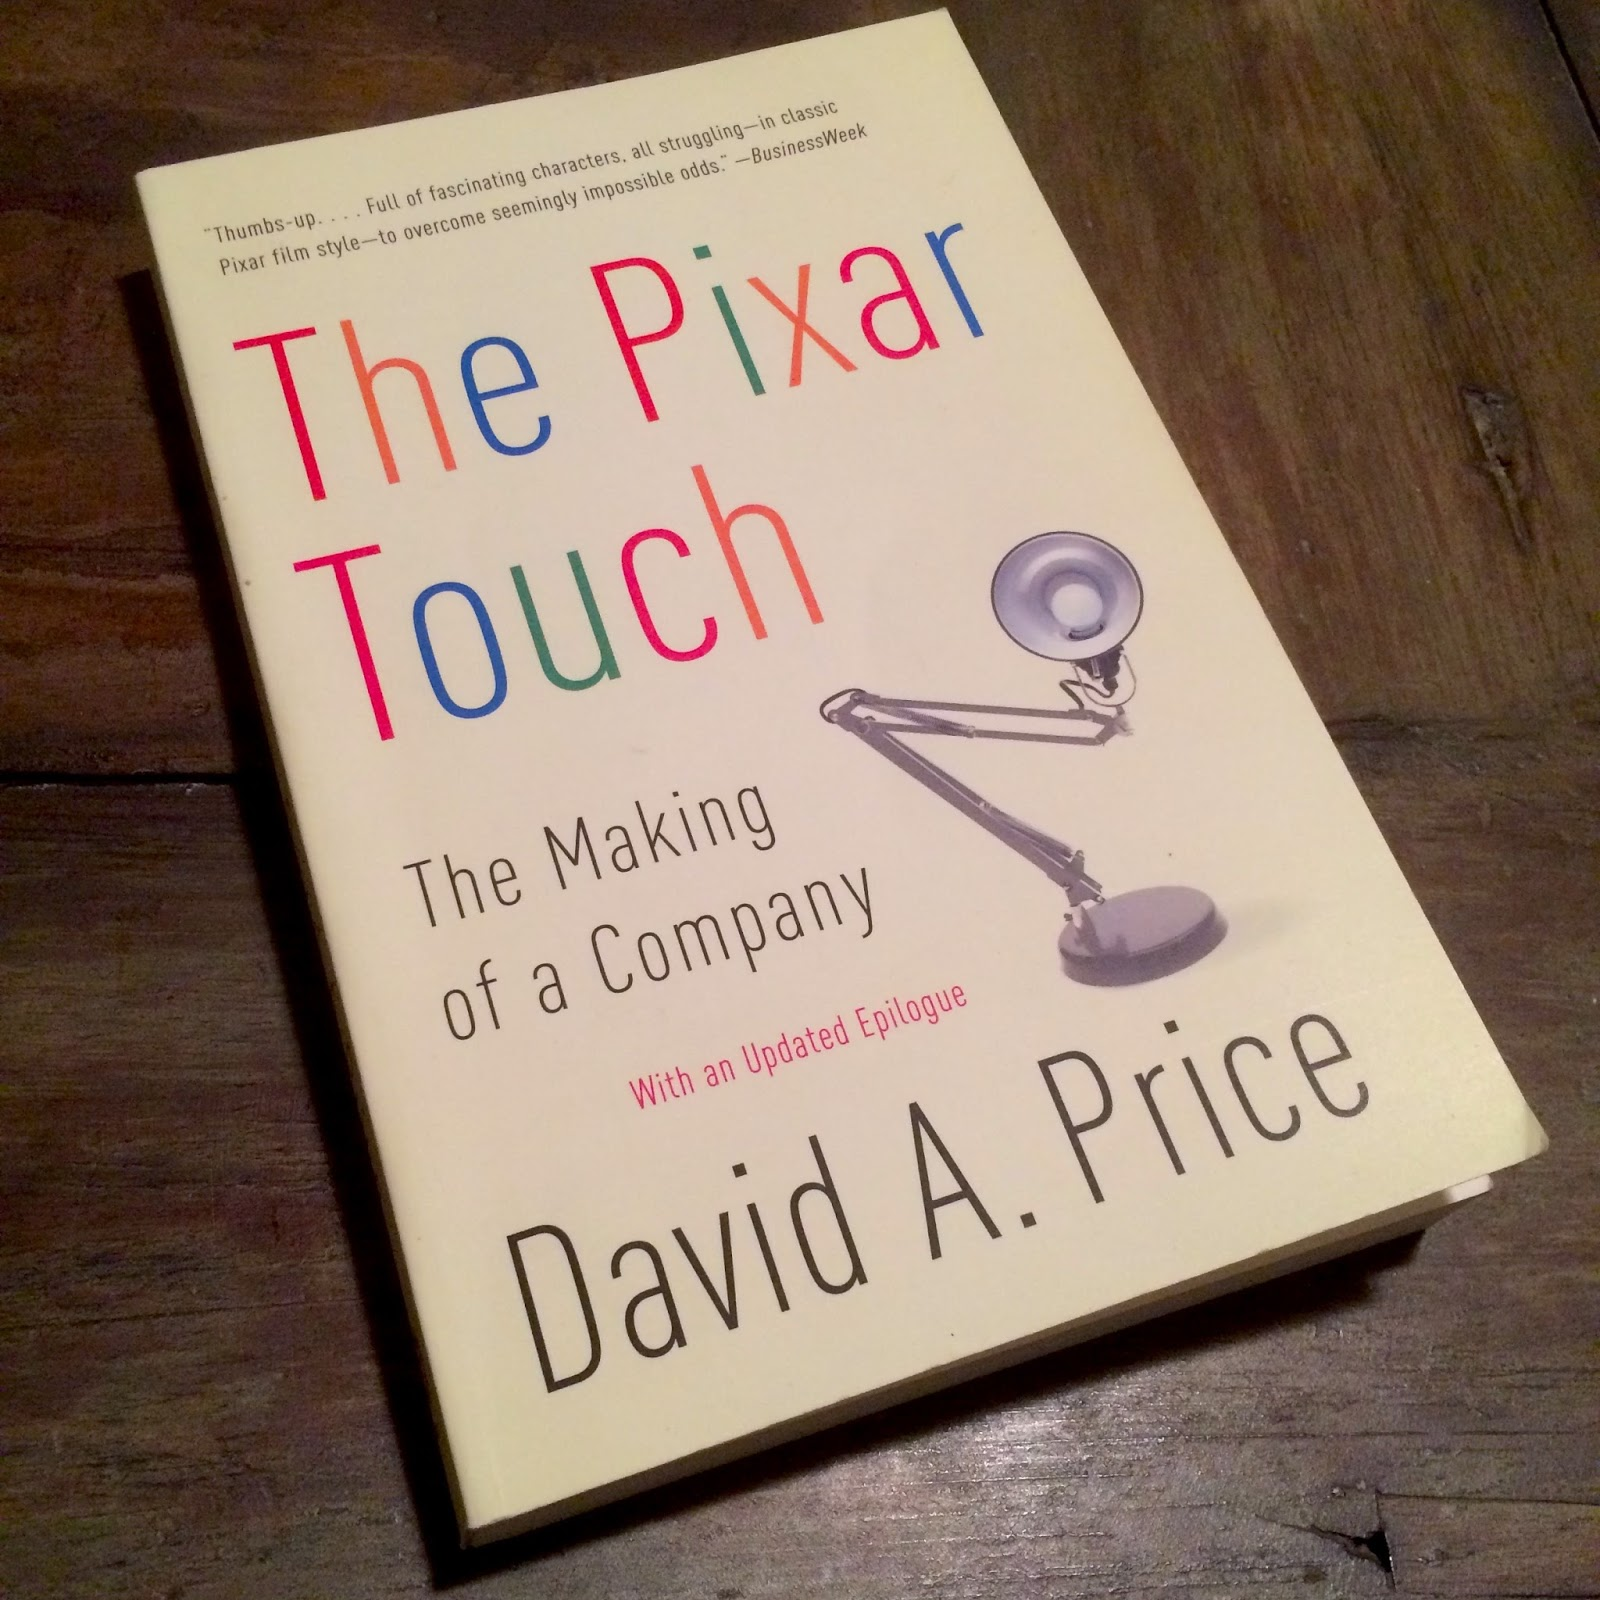 The Pixar Touch The Making Of A Company By David A Price